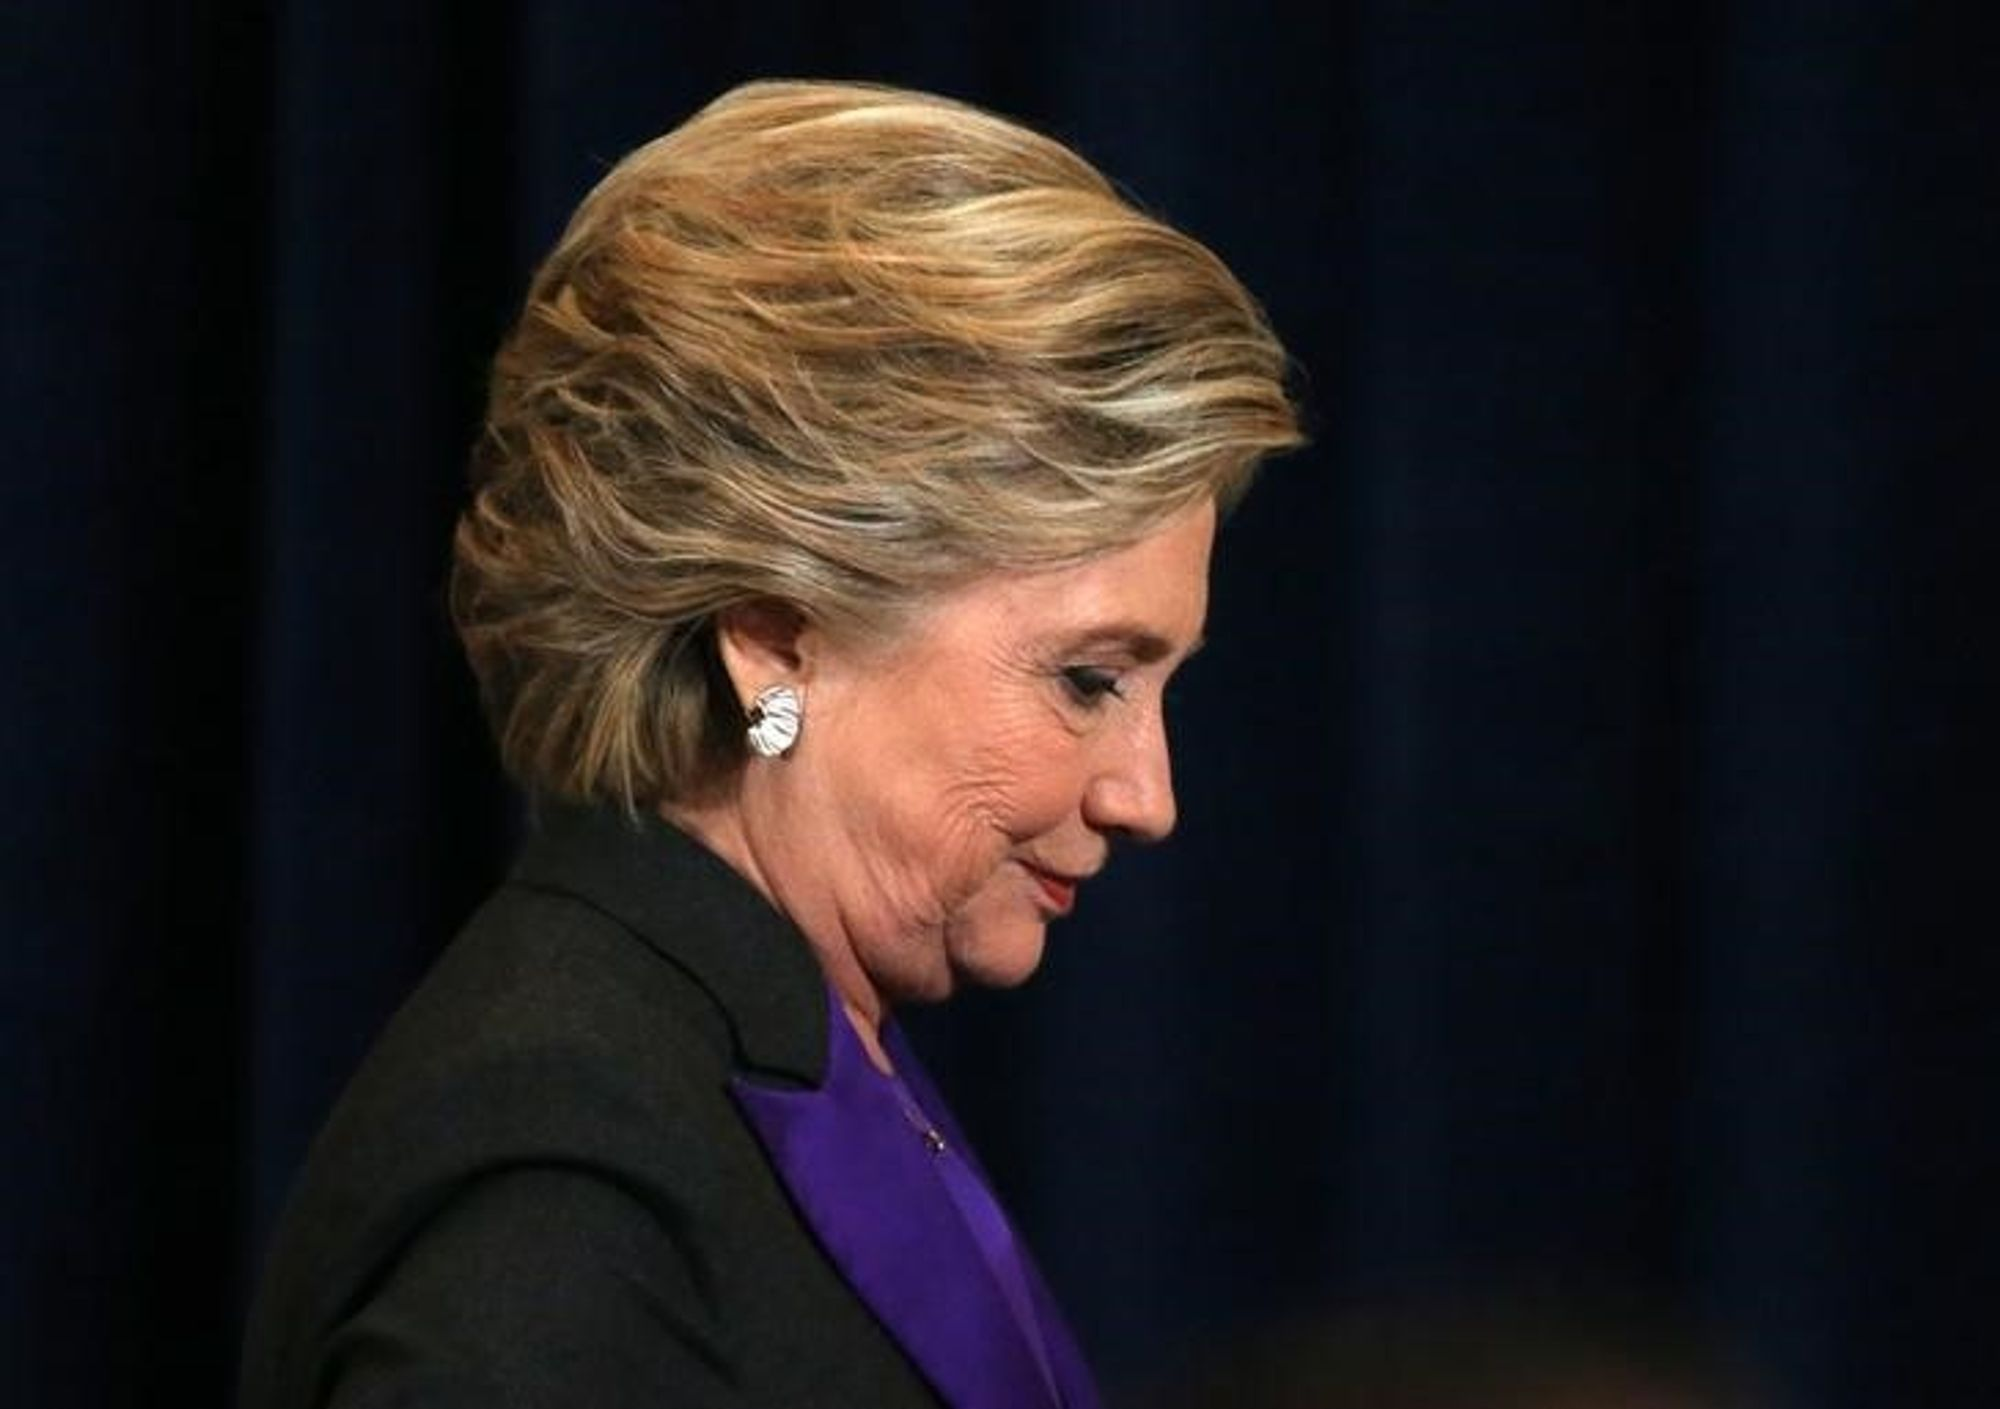 Obamagate Is Fake — The Real Scandal Is What The FBI Did To Clinton